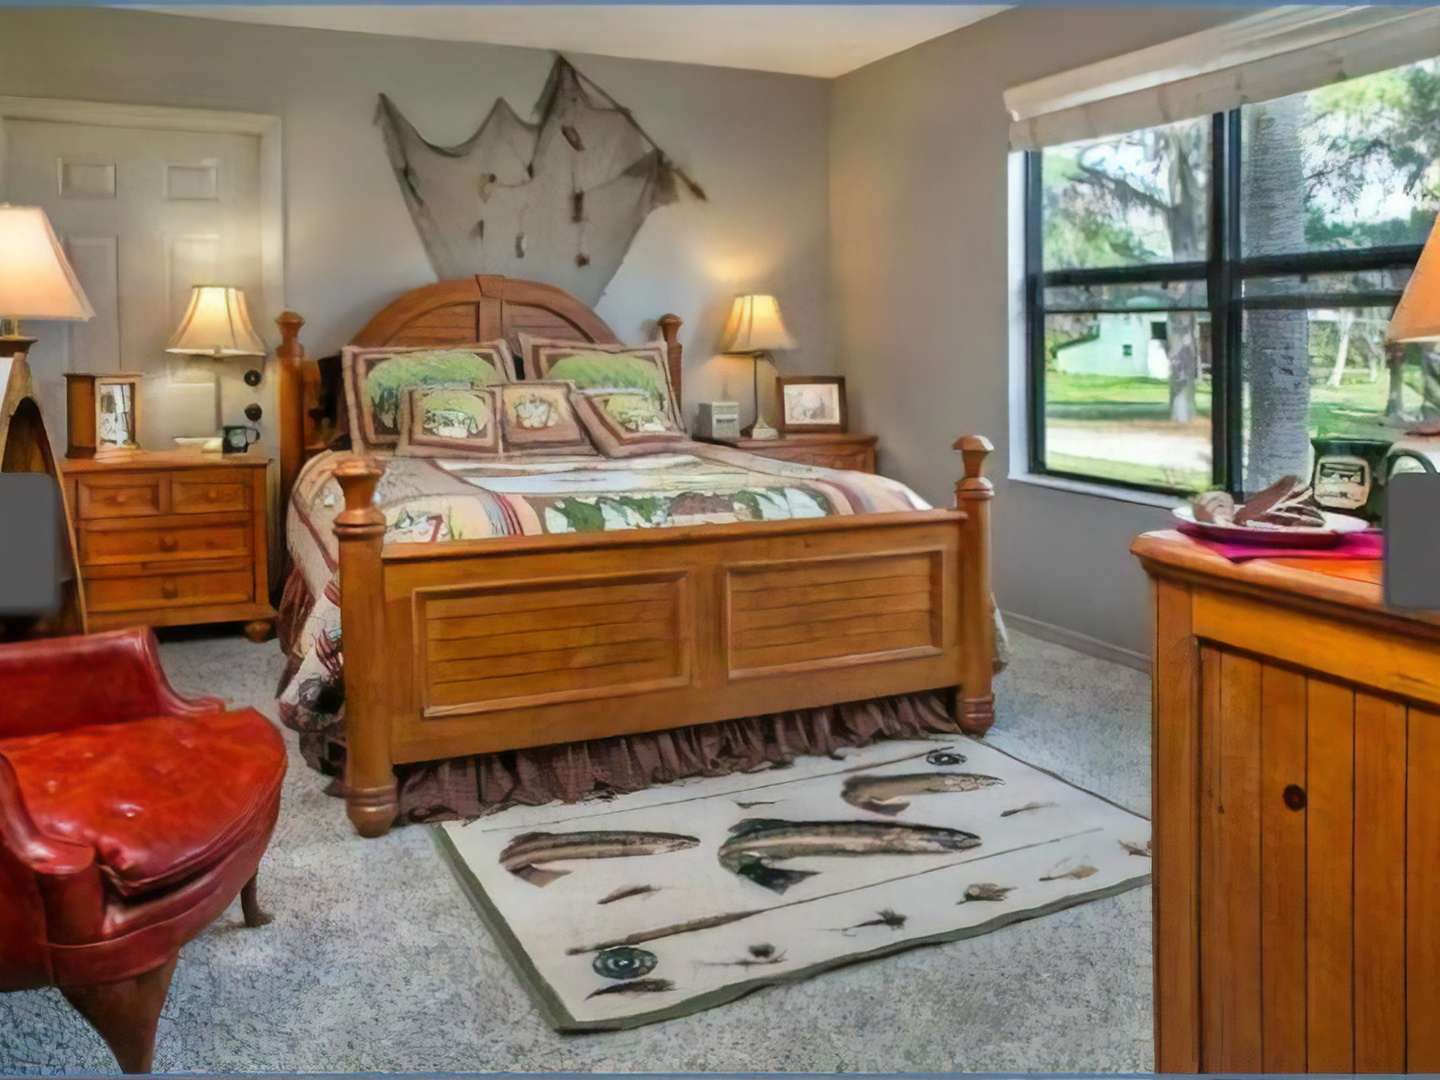 A room filled with furniture and a large window at Hampton Lake Bed & Breakfast.